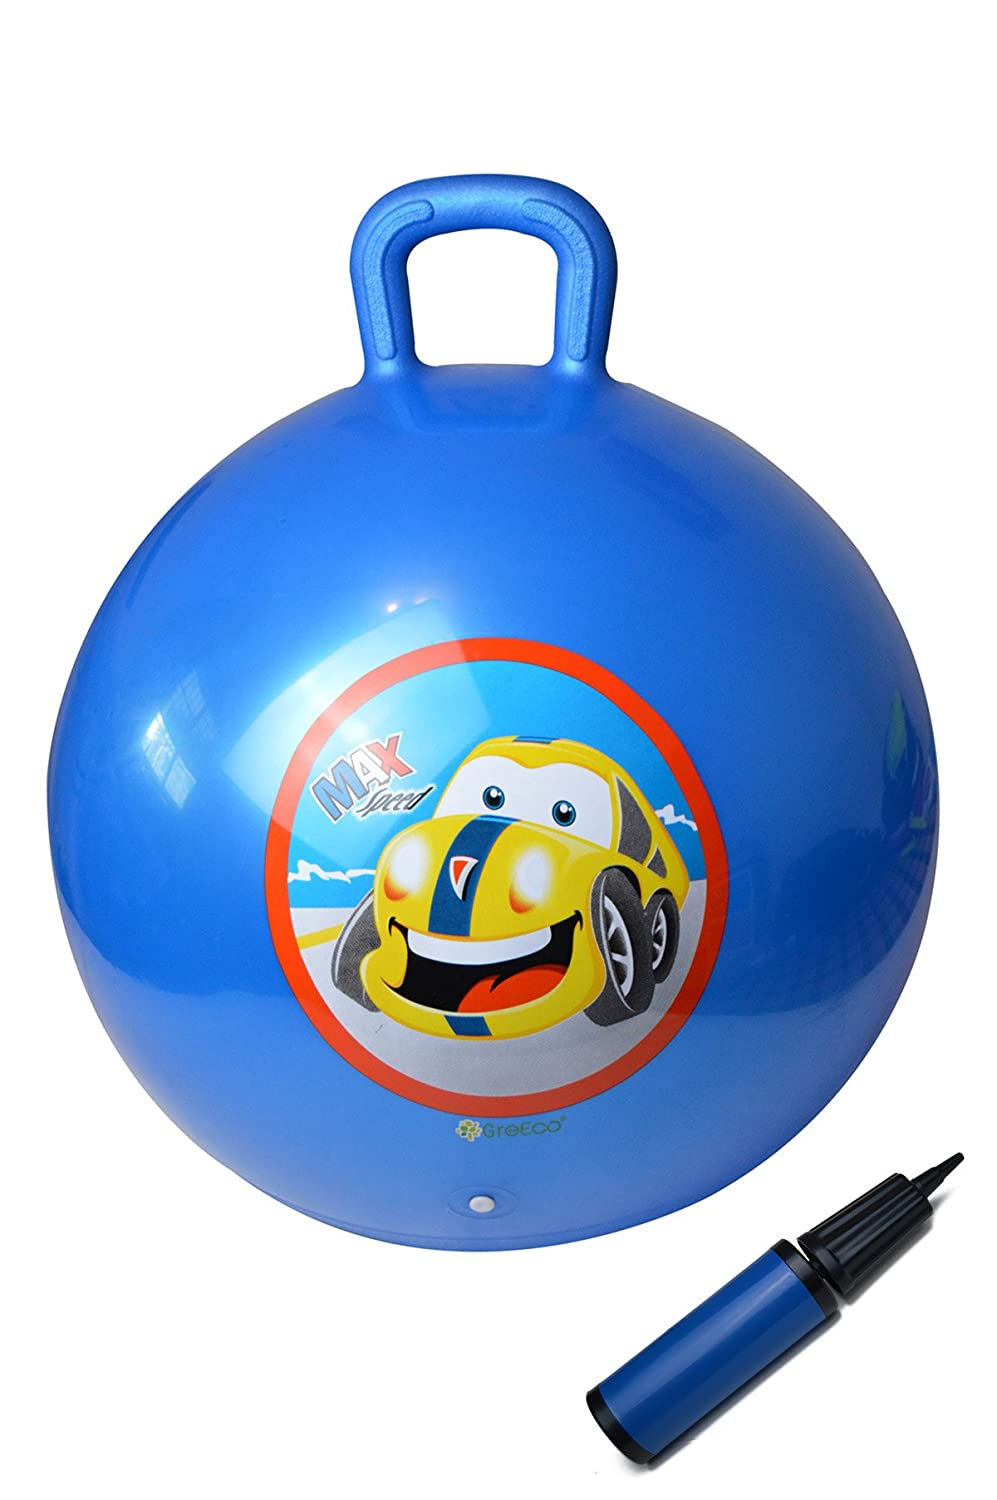 GreEco Space Hopper Ball Including Free Pump Kangaroo Bouncer Hippity Hop Bouncing Toy Diameter 55cm 22 Inch for Ages 6 9 Blue